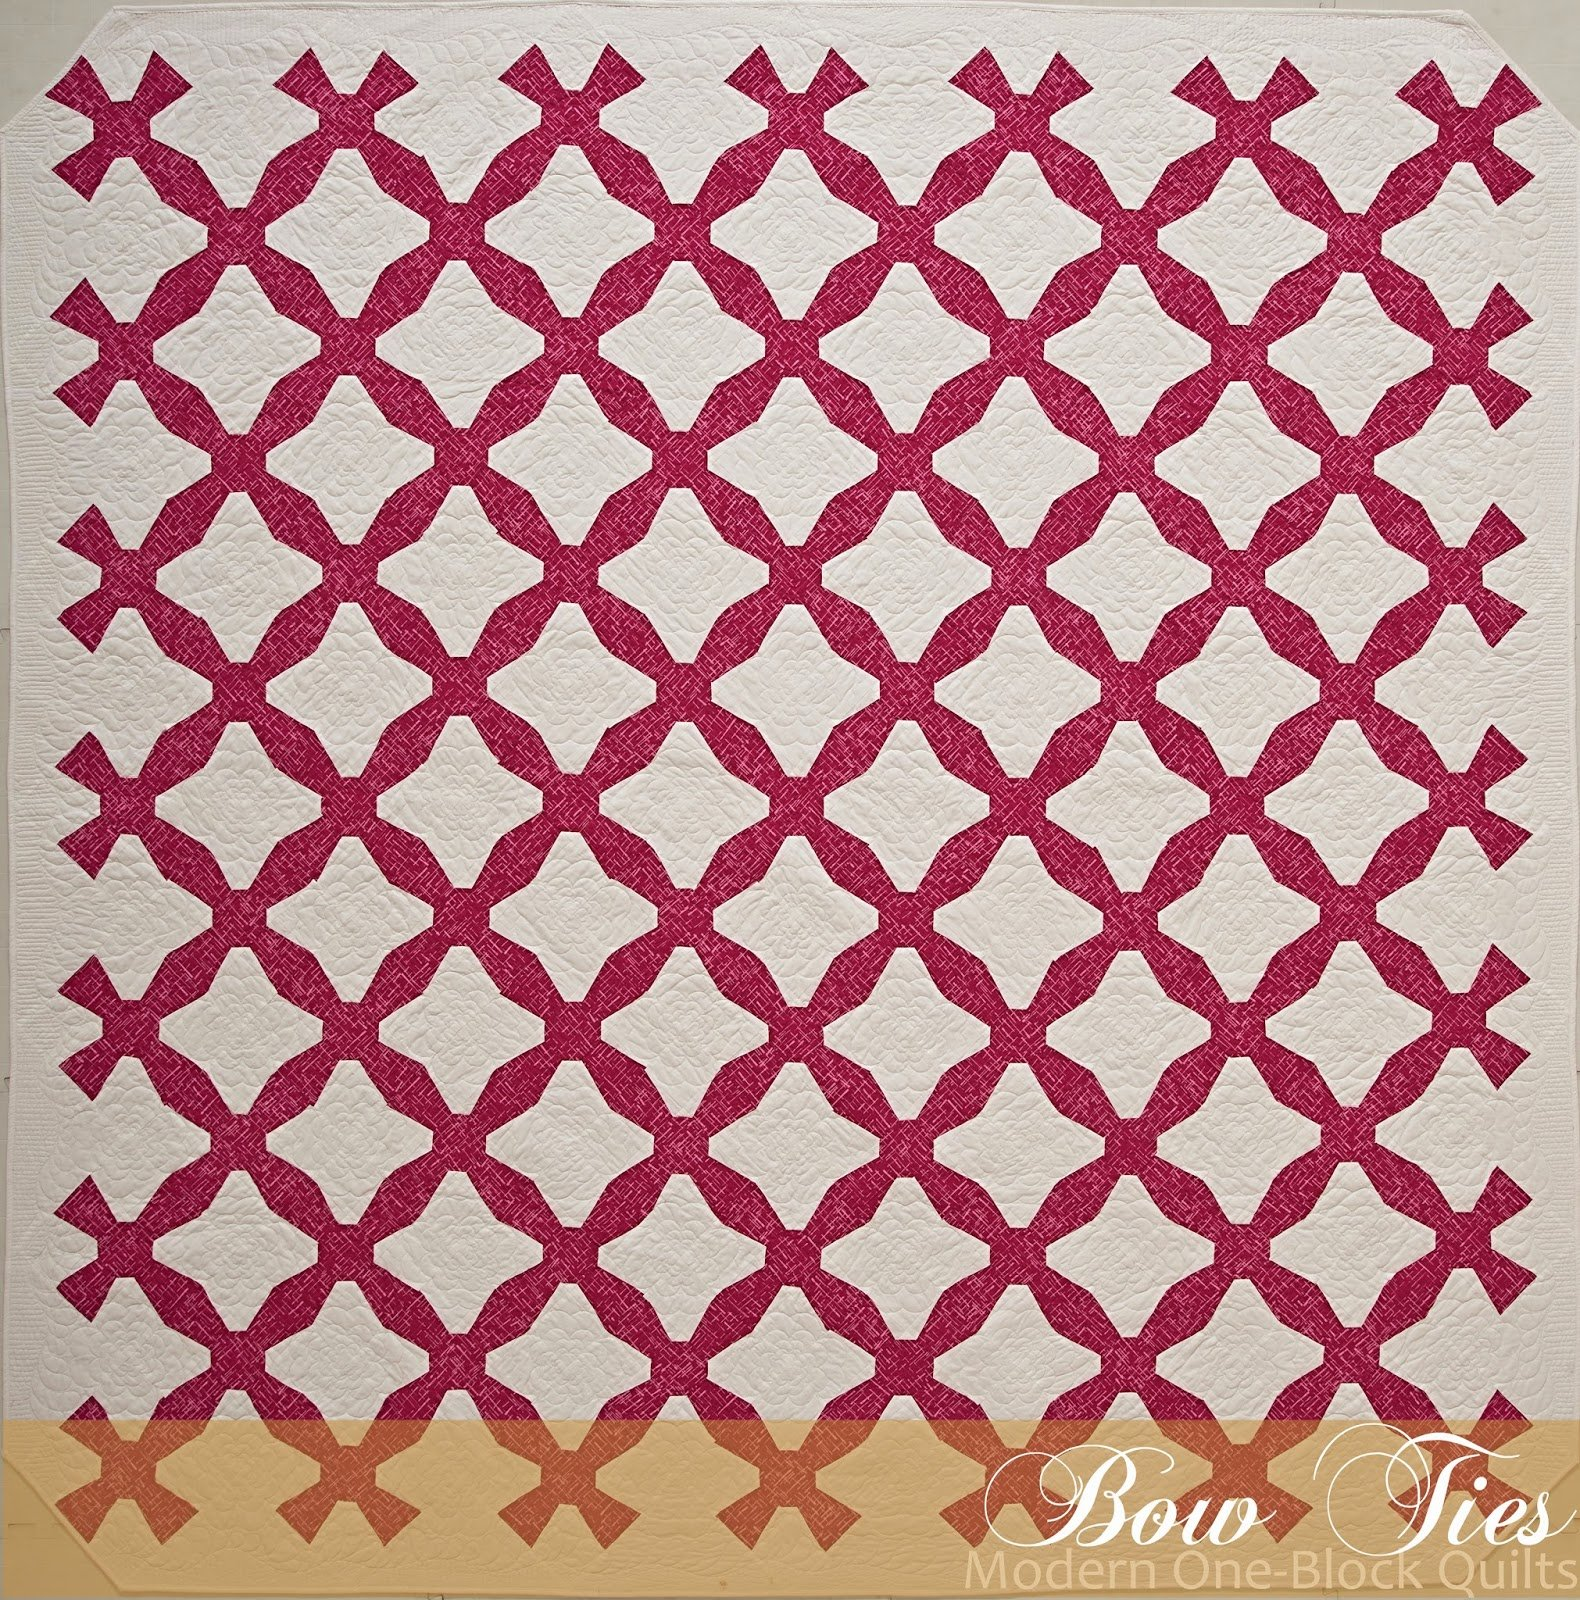 Bow Ties - The Quilt